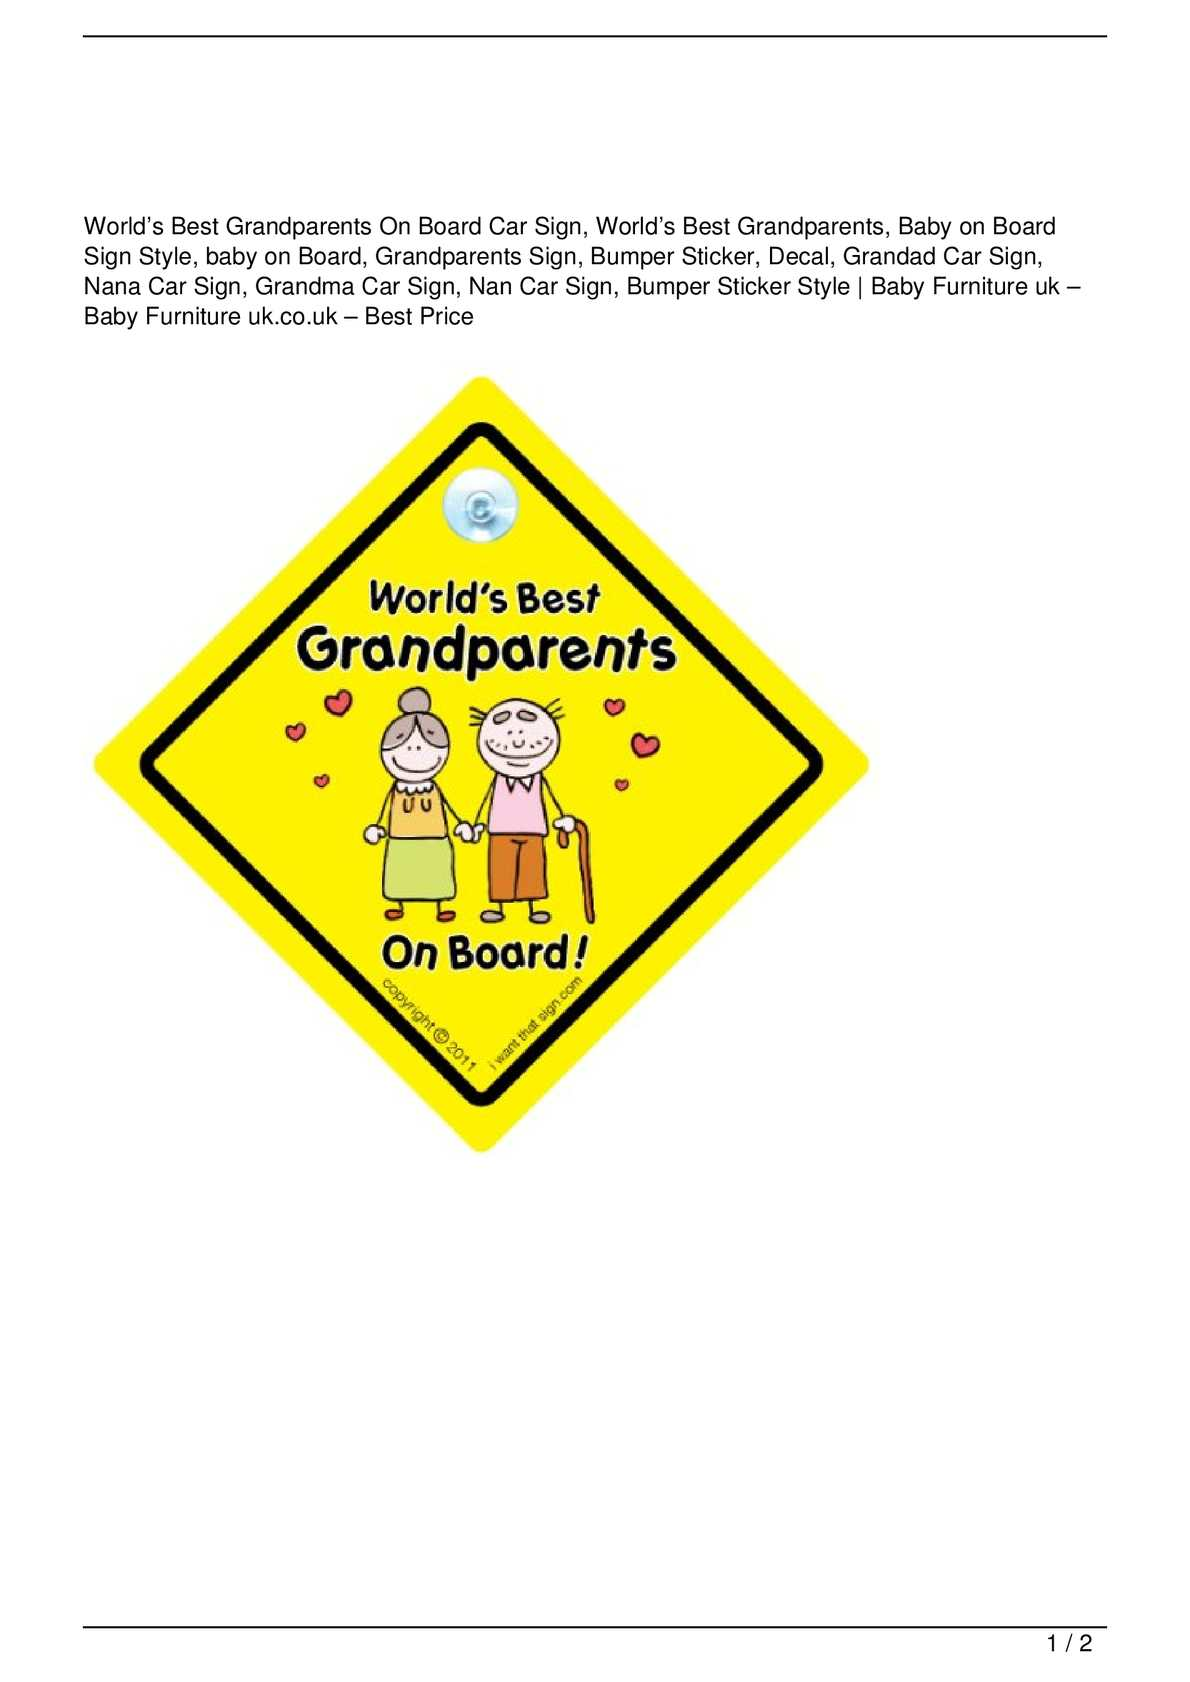 Calaméo worlds best grandparents on board car sign worlds best grandparents baby on board sign style baby on board grandparents sign bumper sticker